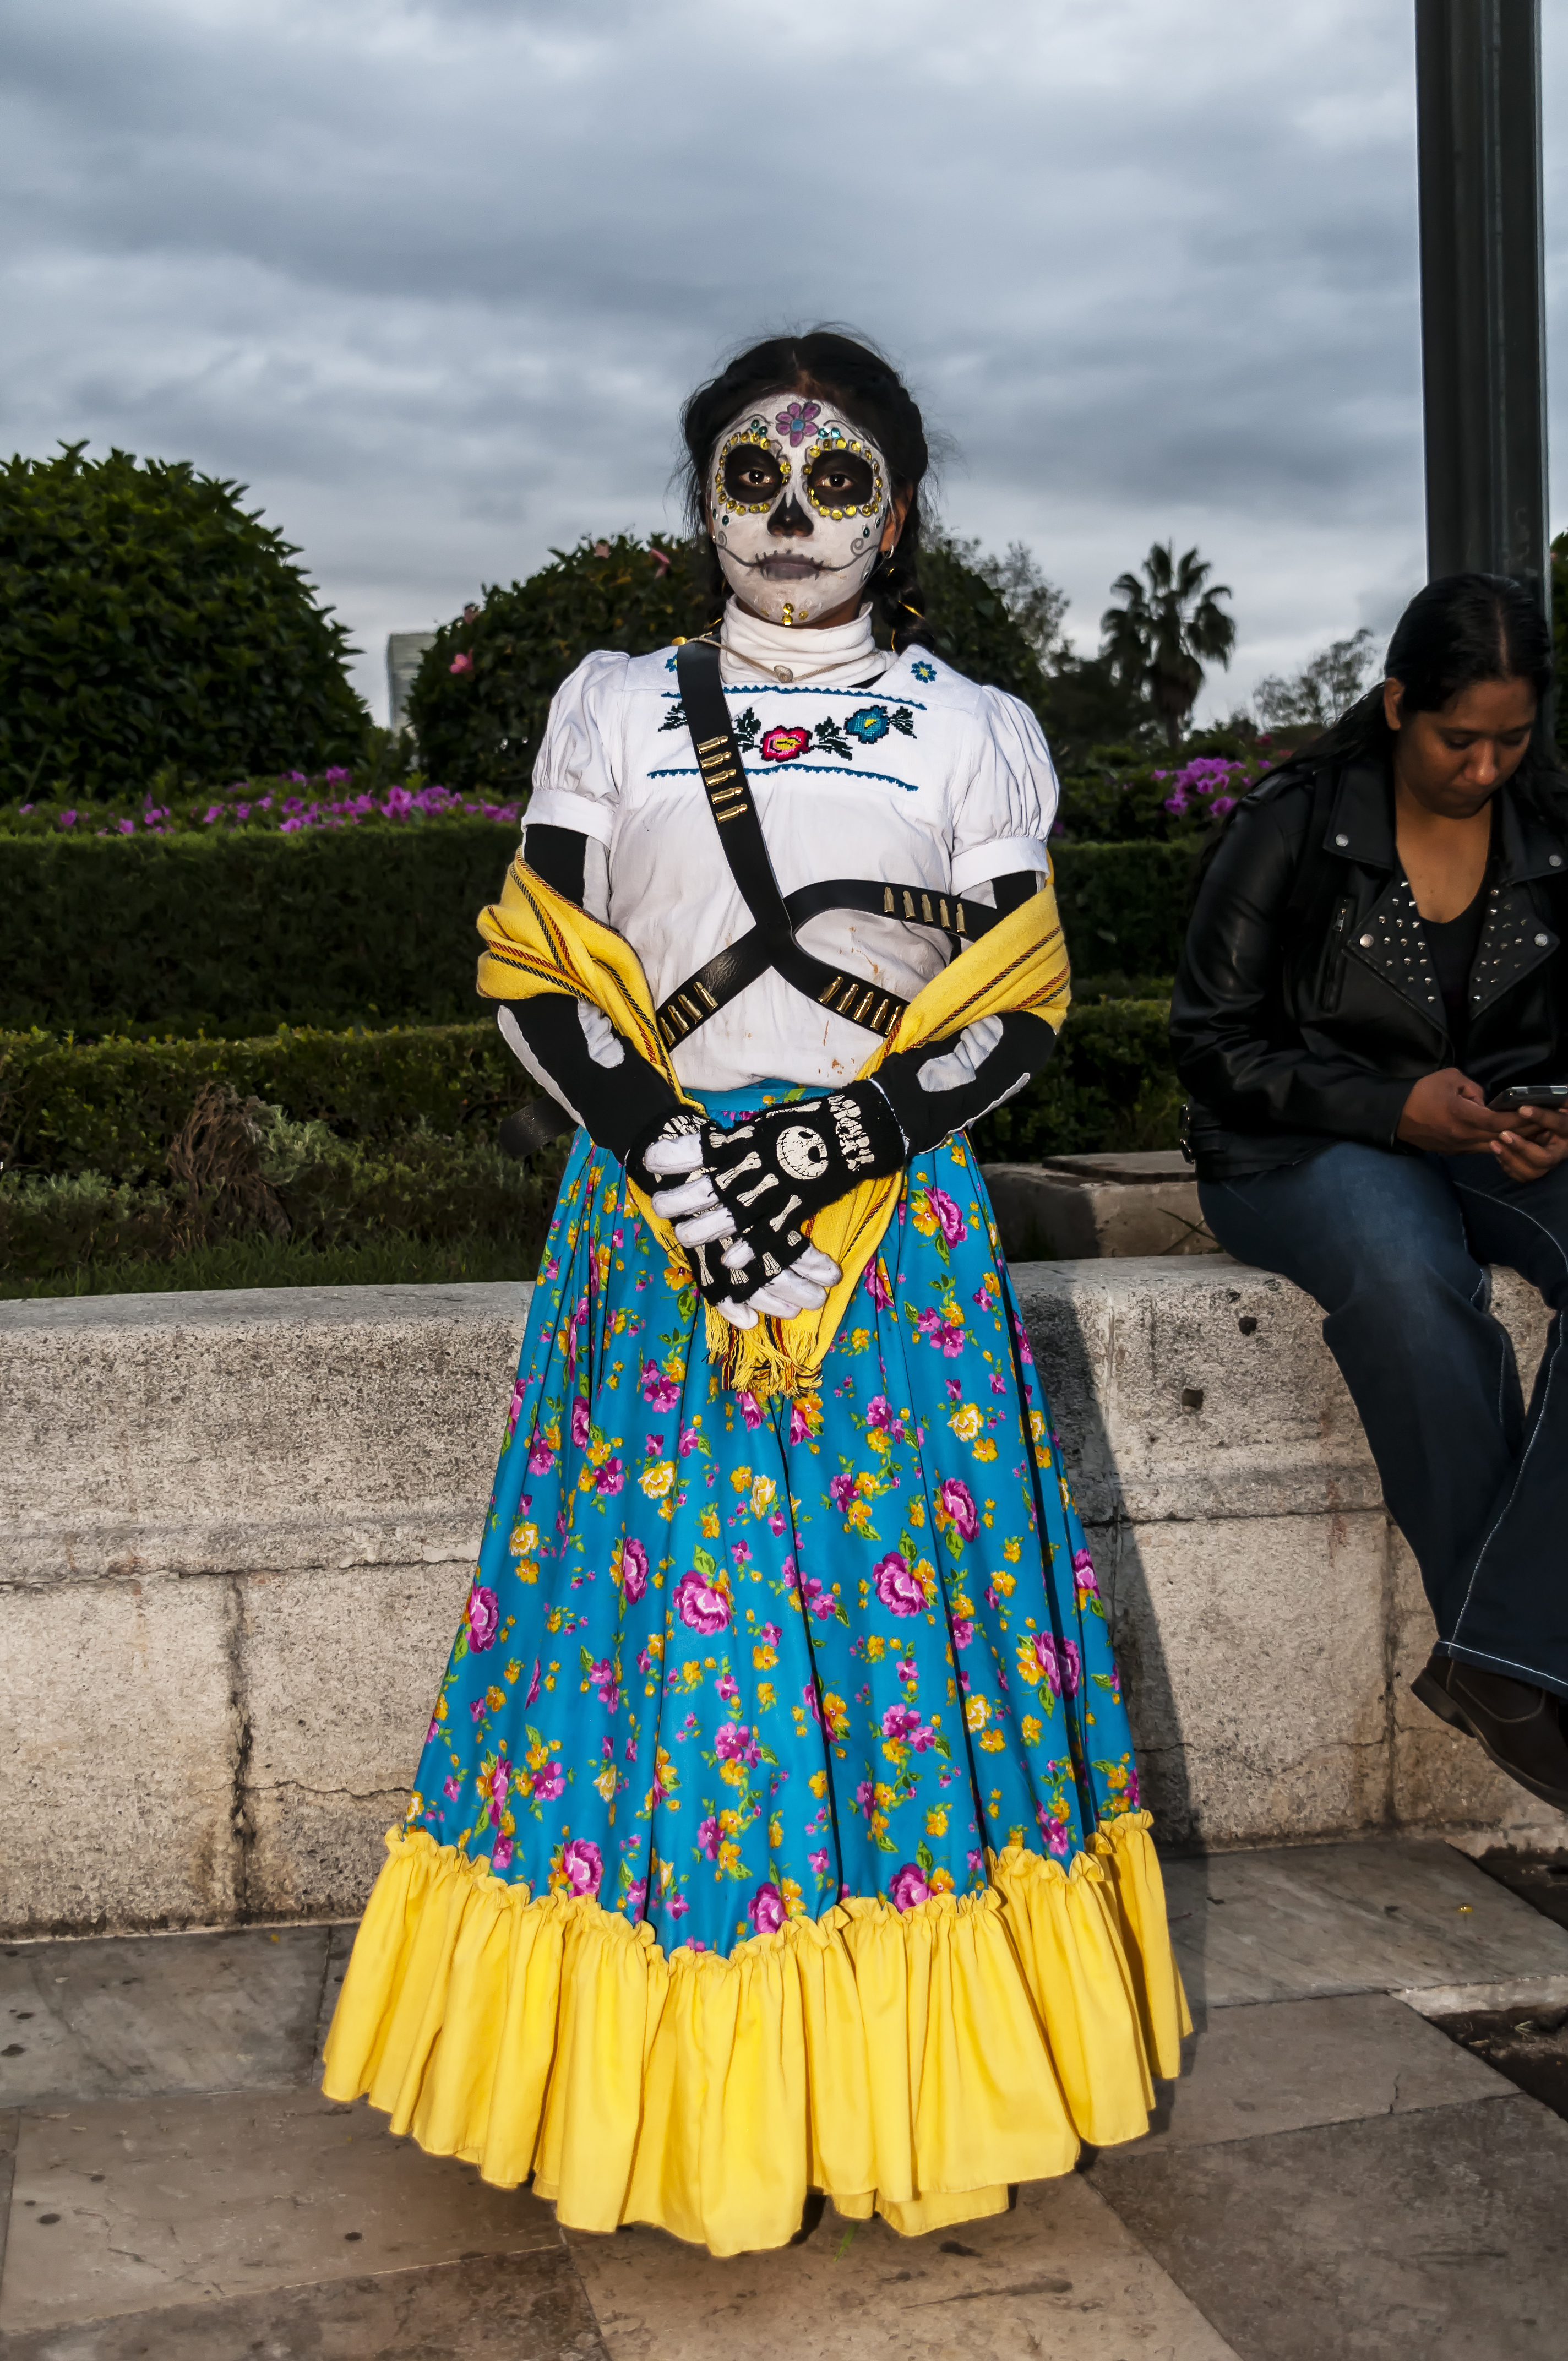 Fileniña Catrina 2jpg Wikimedia Commons